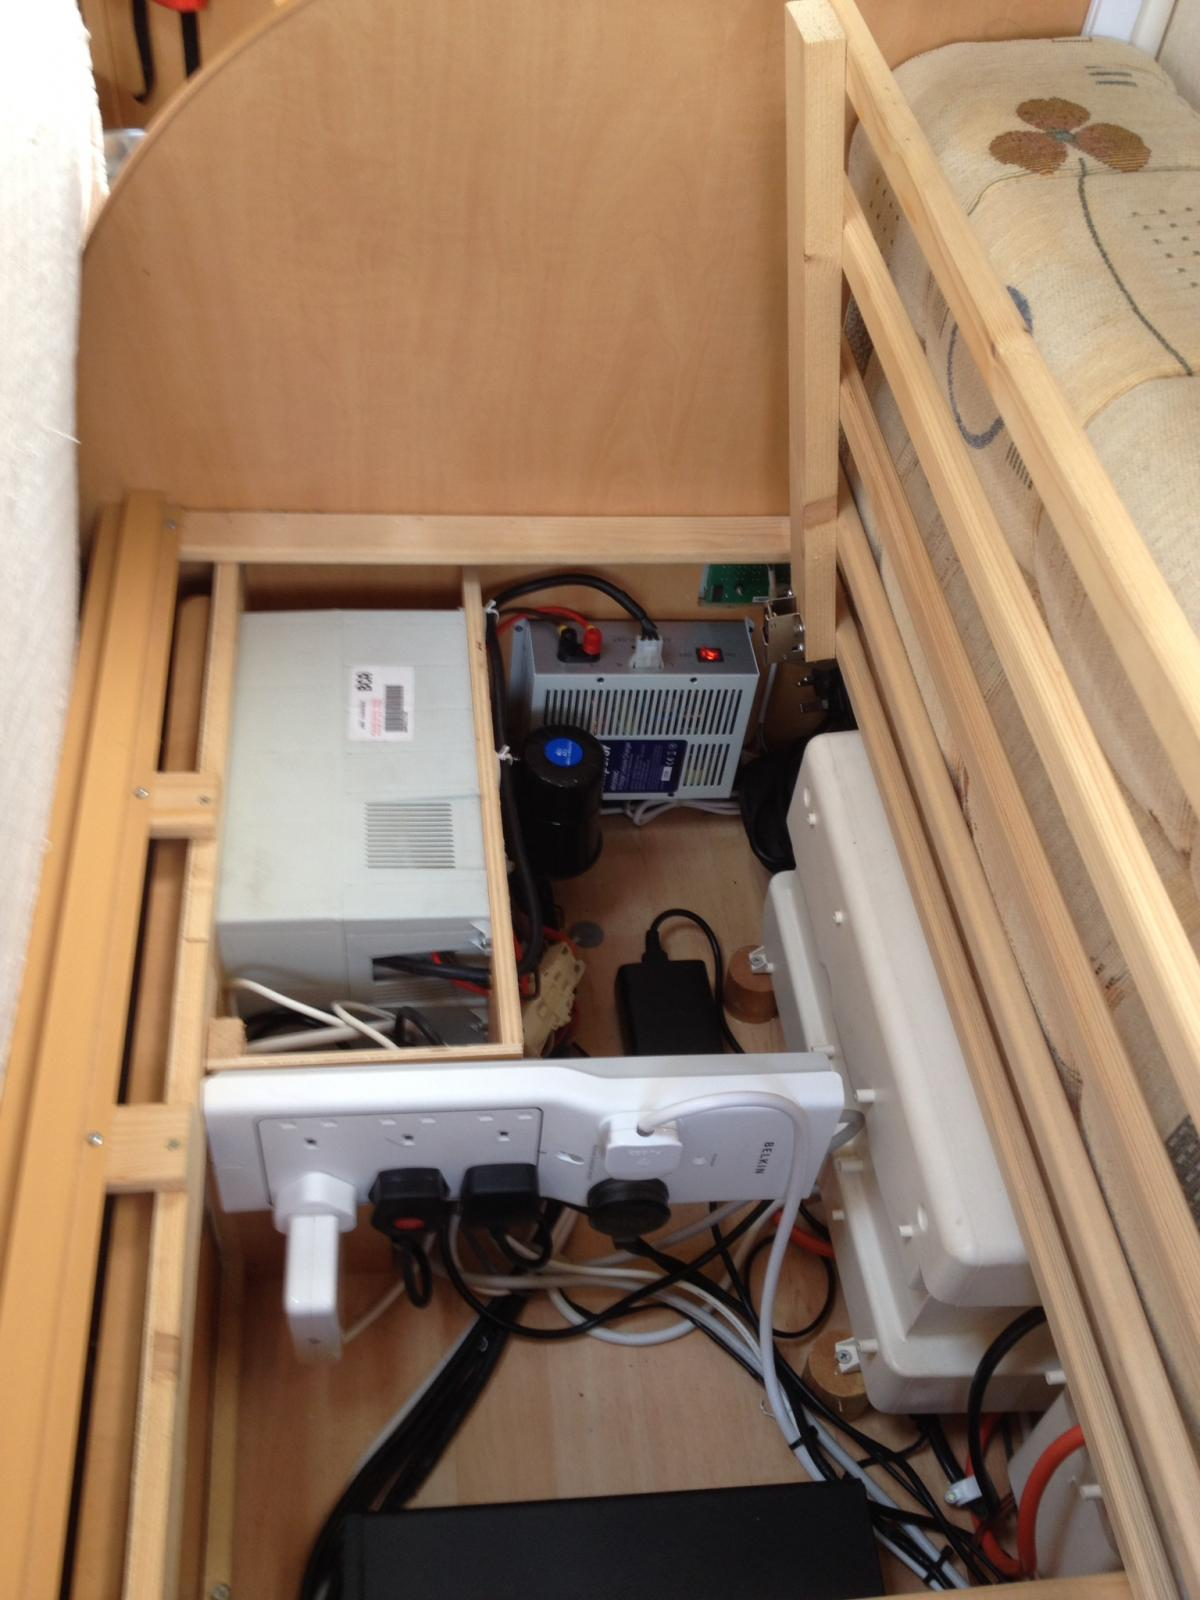 Topics Related To Coachman Rv Wiring Diagram